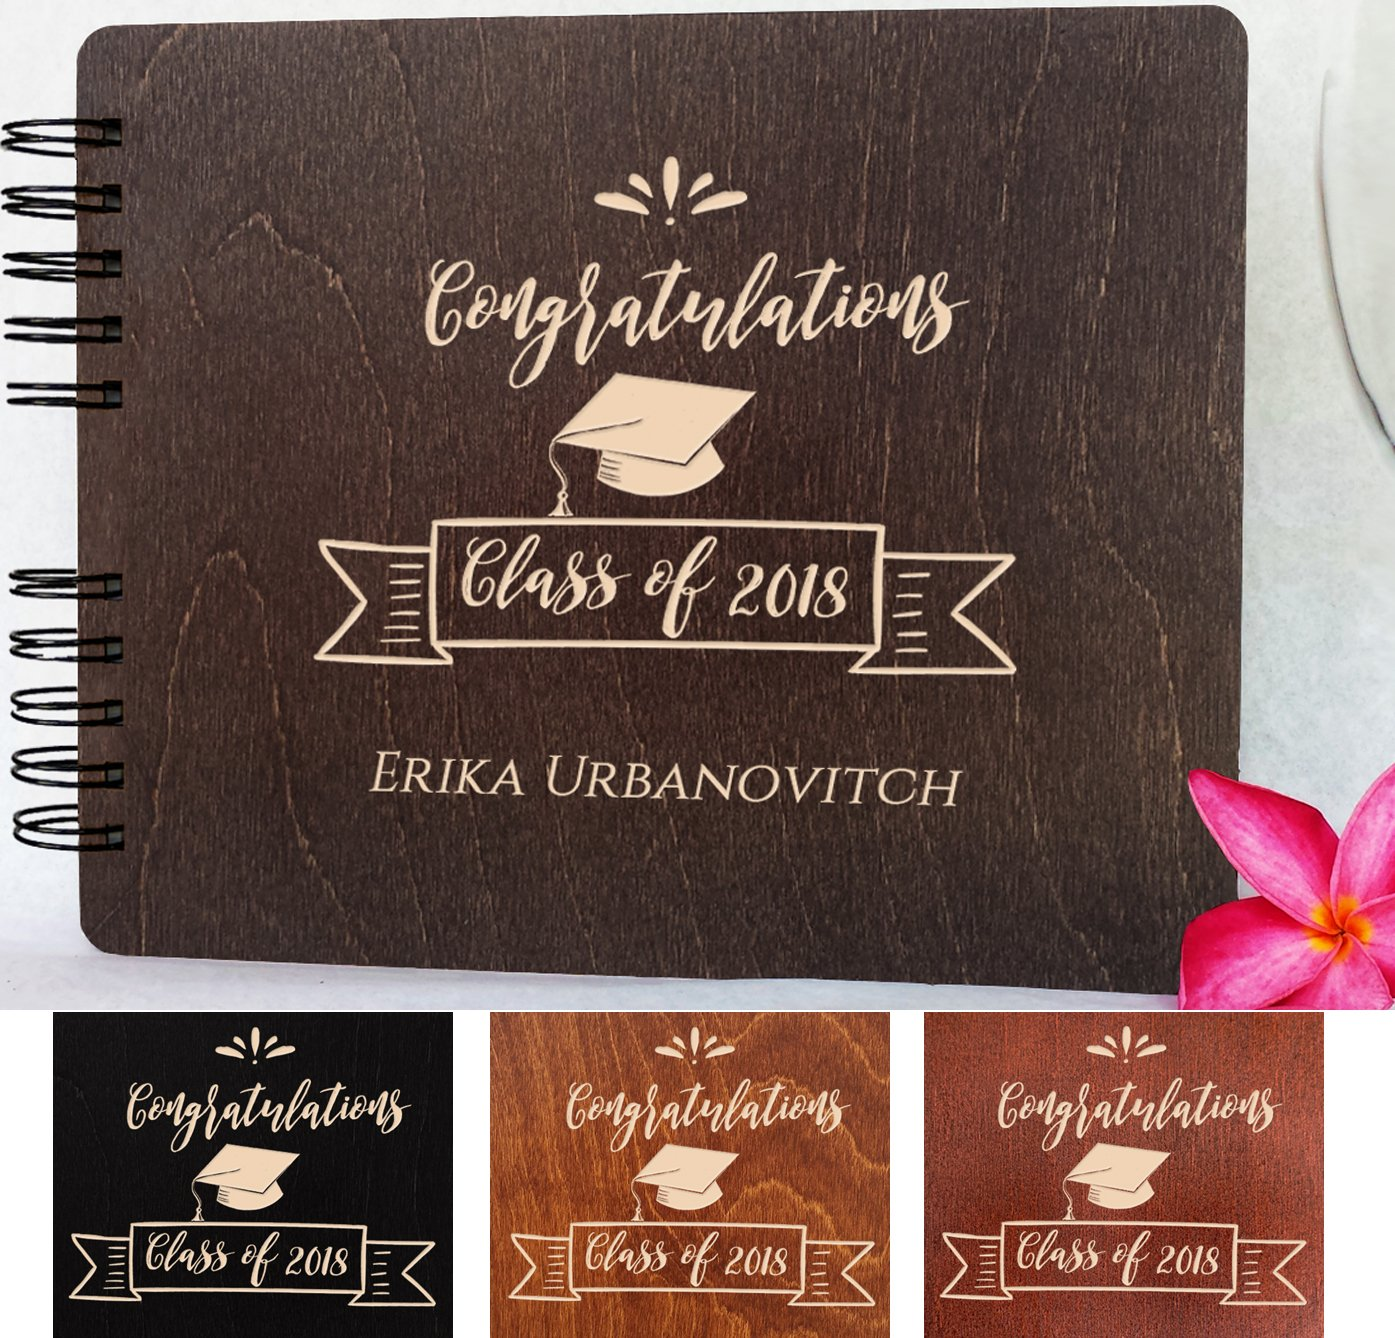 Graduation Wood Guest Book Made in USA (Customize Personalize Wood Engraving) Rustic Grad Gifts Photo Album Party Supplies Decorations Polaroid Photo Guest Book Congratulation Class of